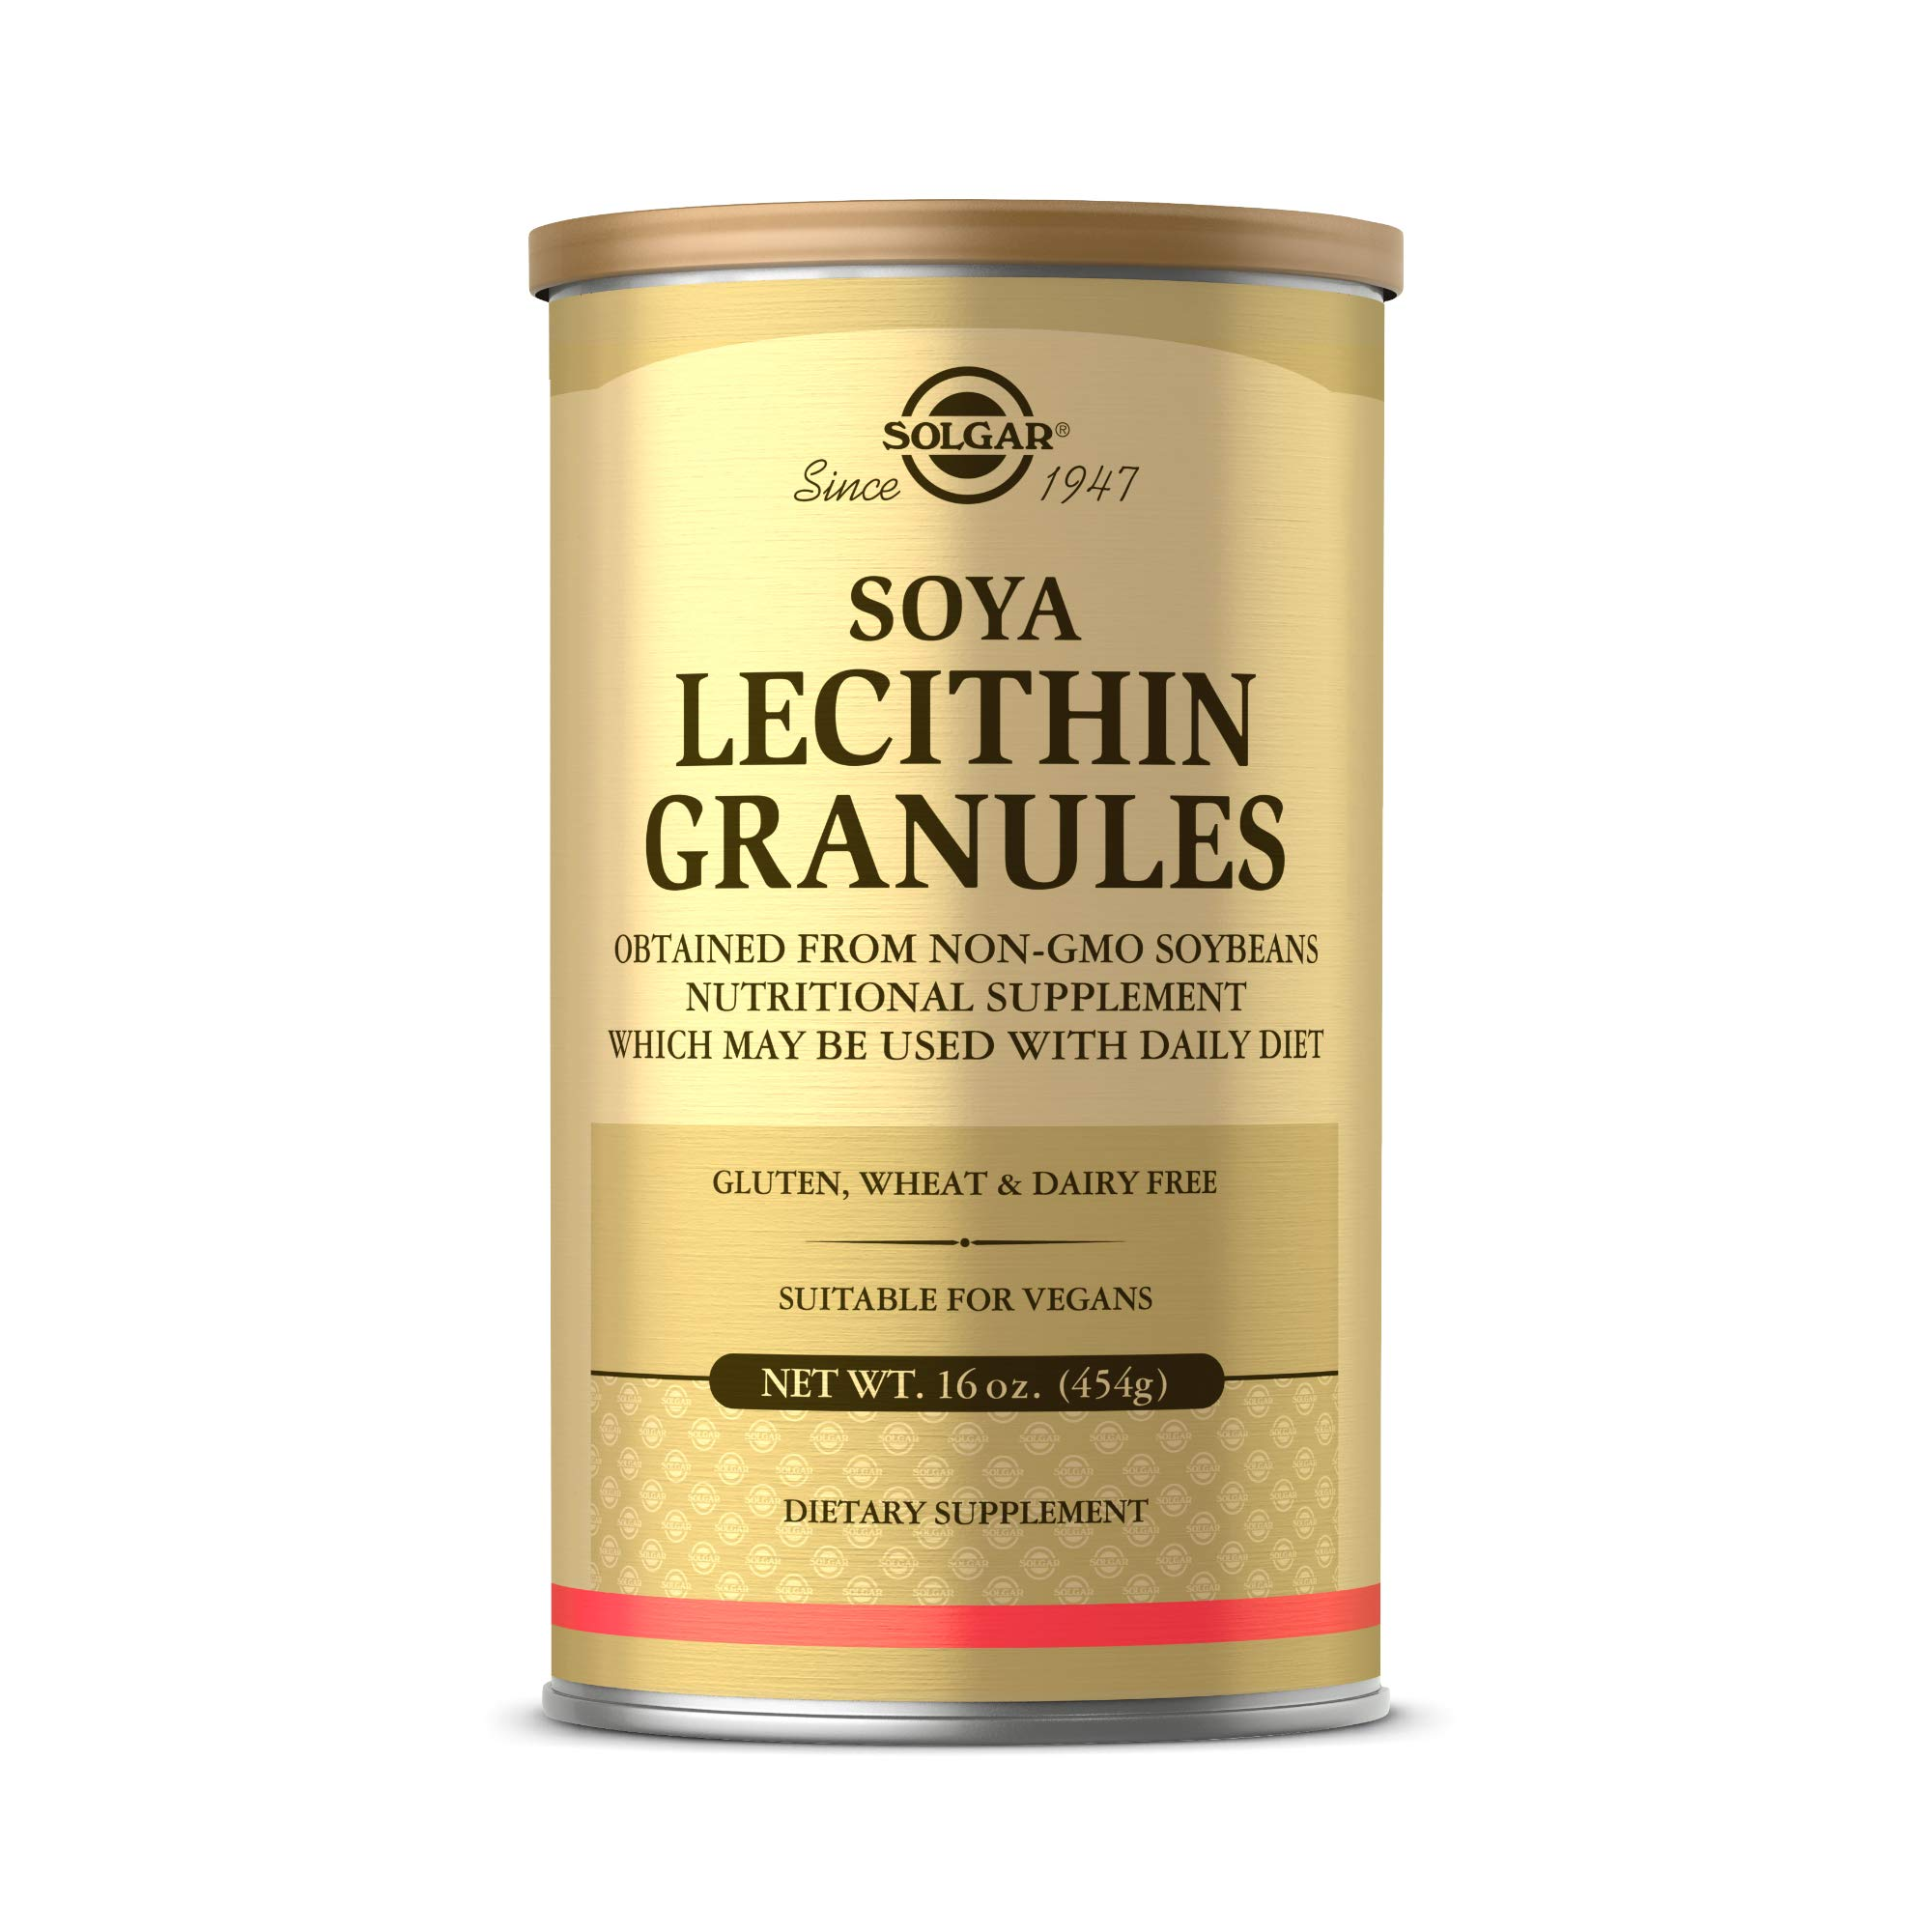 Solgar Lecithin Granules, 16 oz. - Supports Overall Health - Natural Soya Lecithin - Source of Choline & Essential Fatty Acids - Vegan, Gluten Free, Dairy Free - 60 Servings